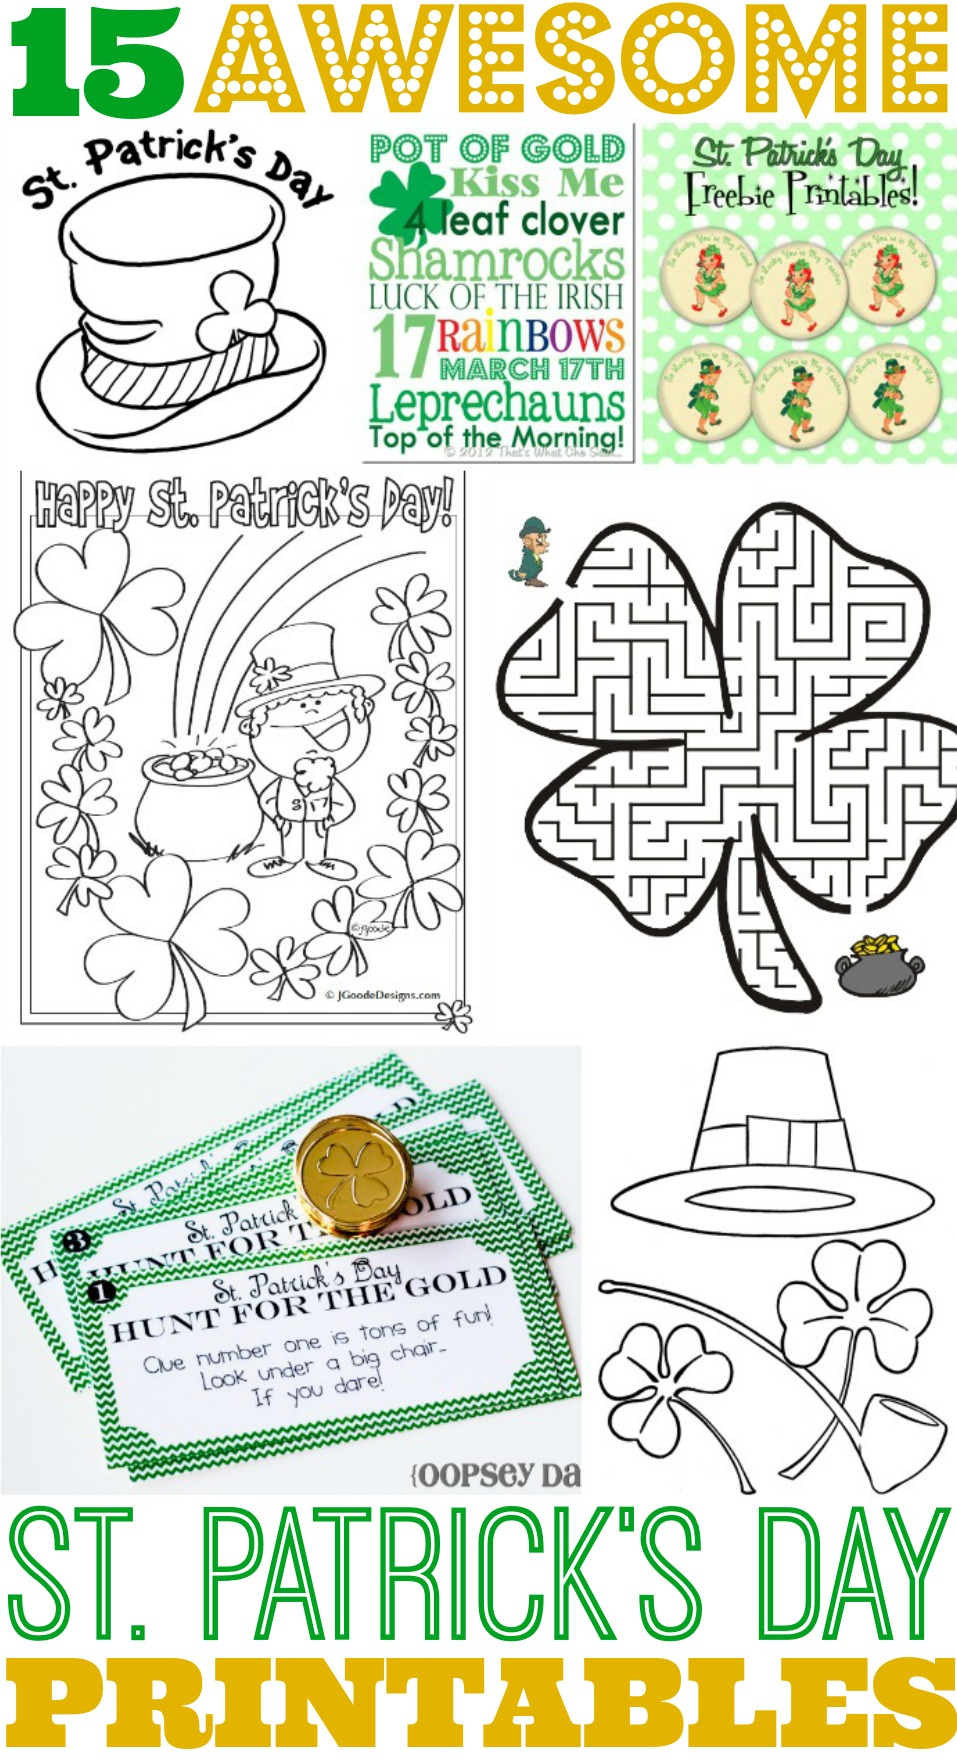 15 Awesome St. Patrick's Day Free Printables For Kids - Free Printable St Patrick's Day Mazes